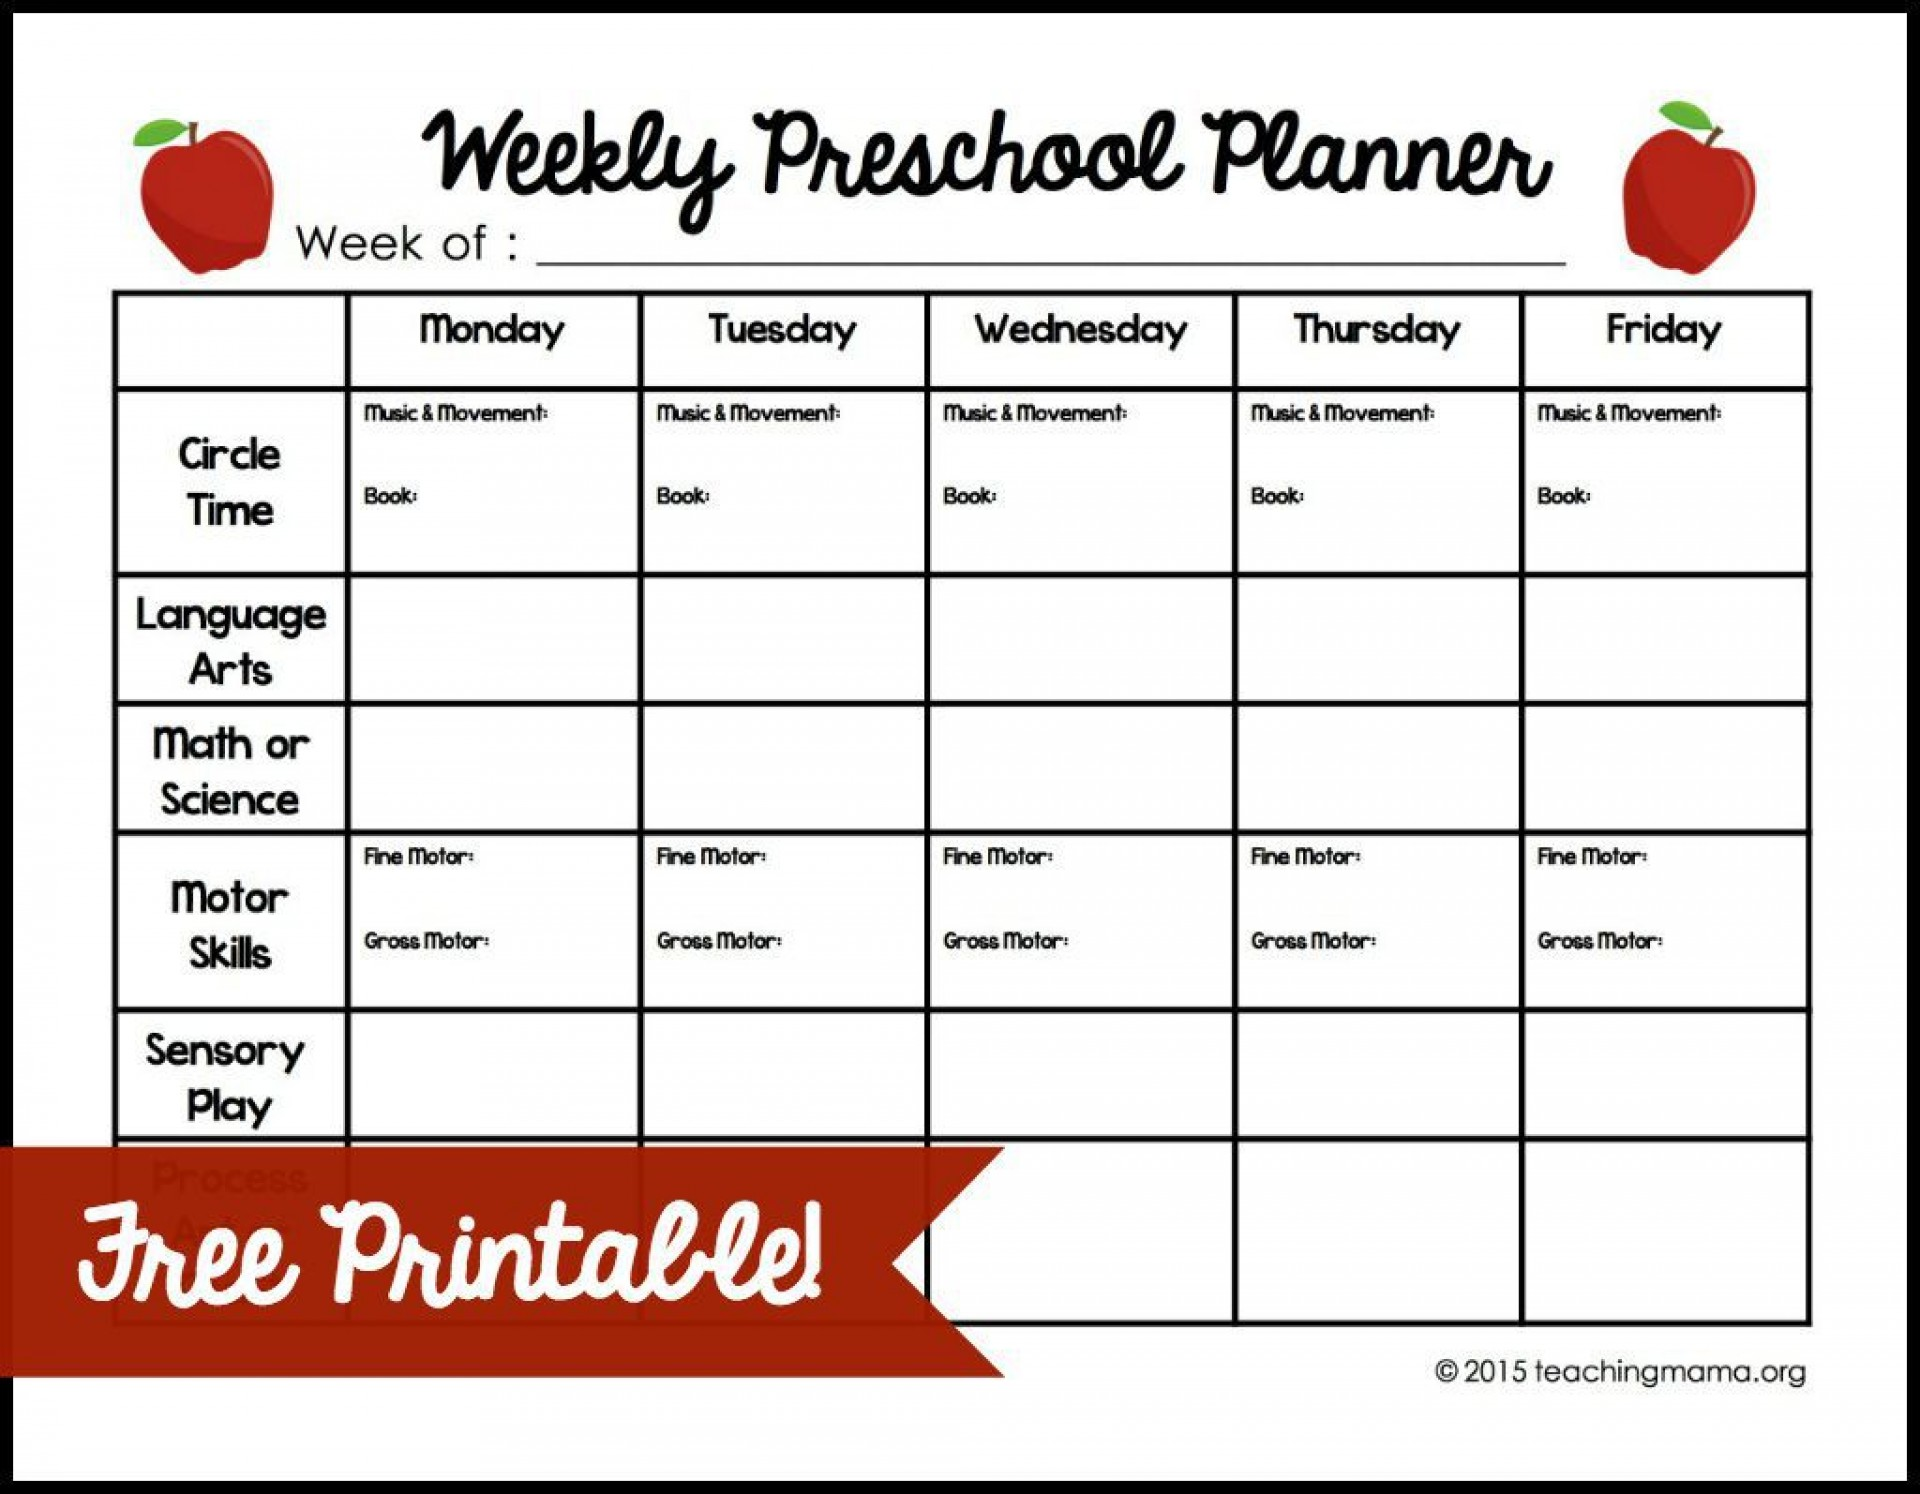 009 Astounding Weekly Lesson Plan Template Photo  Editable Preschool Pdf Google Sheet1920